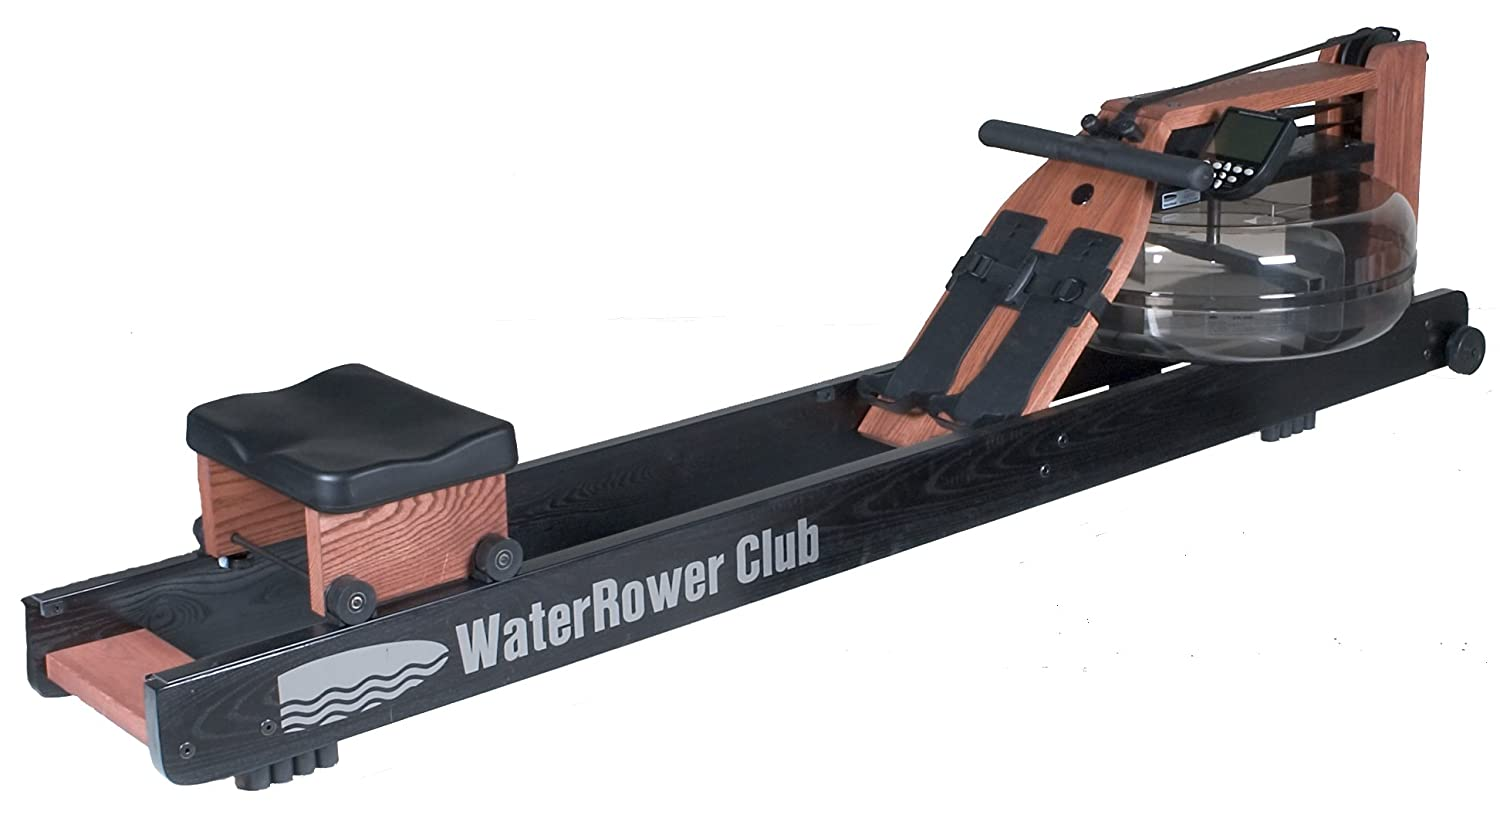 WaterRower Club Rowing Machine in Ash Wood with S4 Monitor by Water Rower